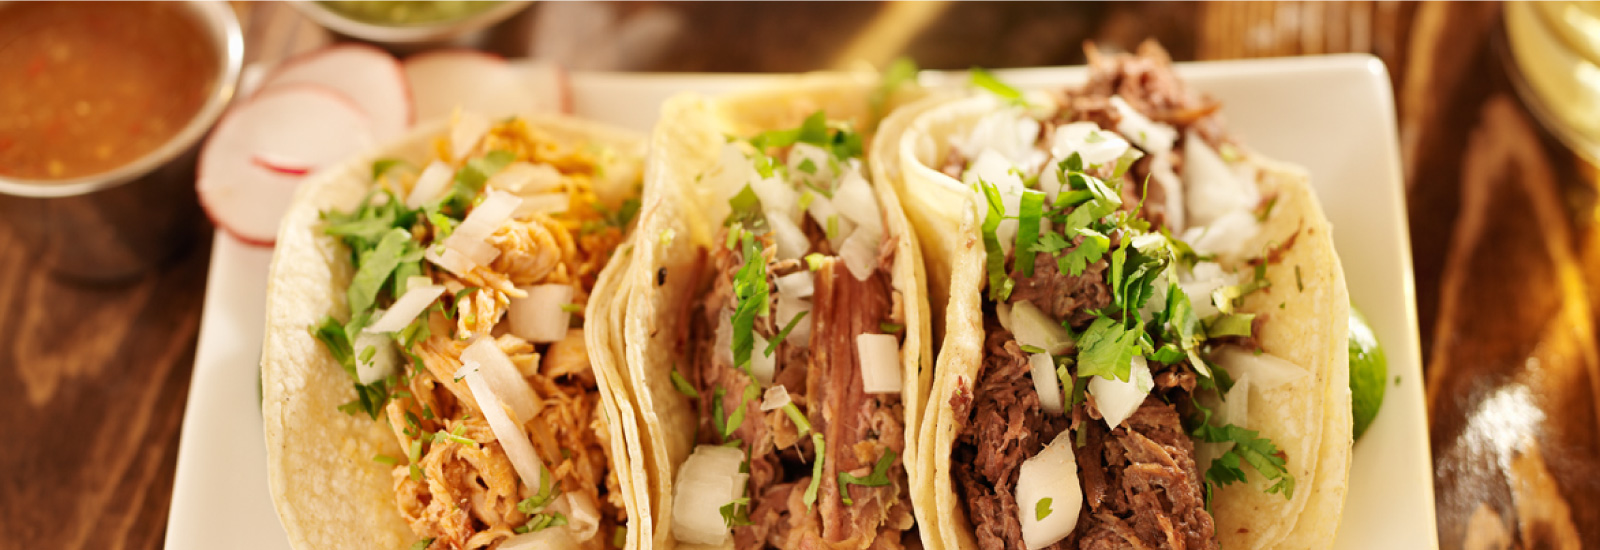 Mexican and Southwestern Restaurants in Las Cruces